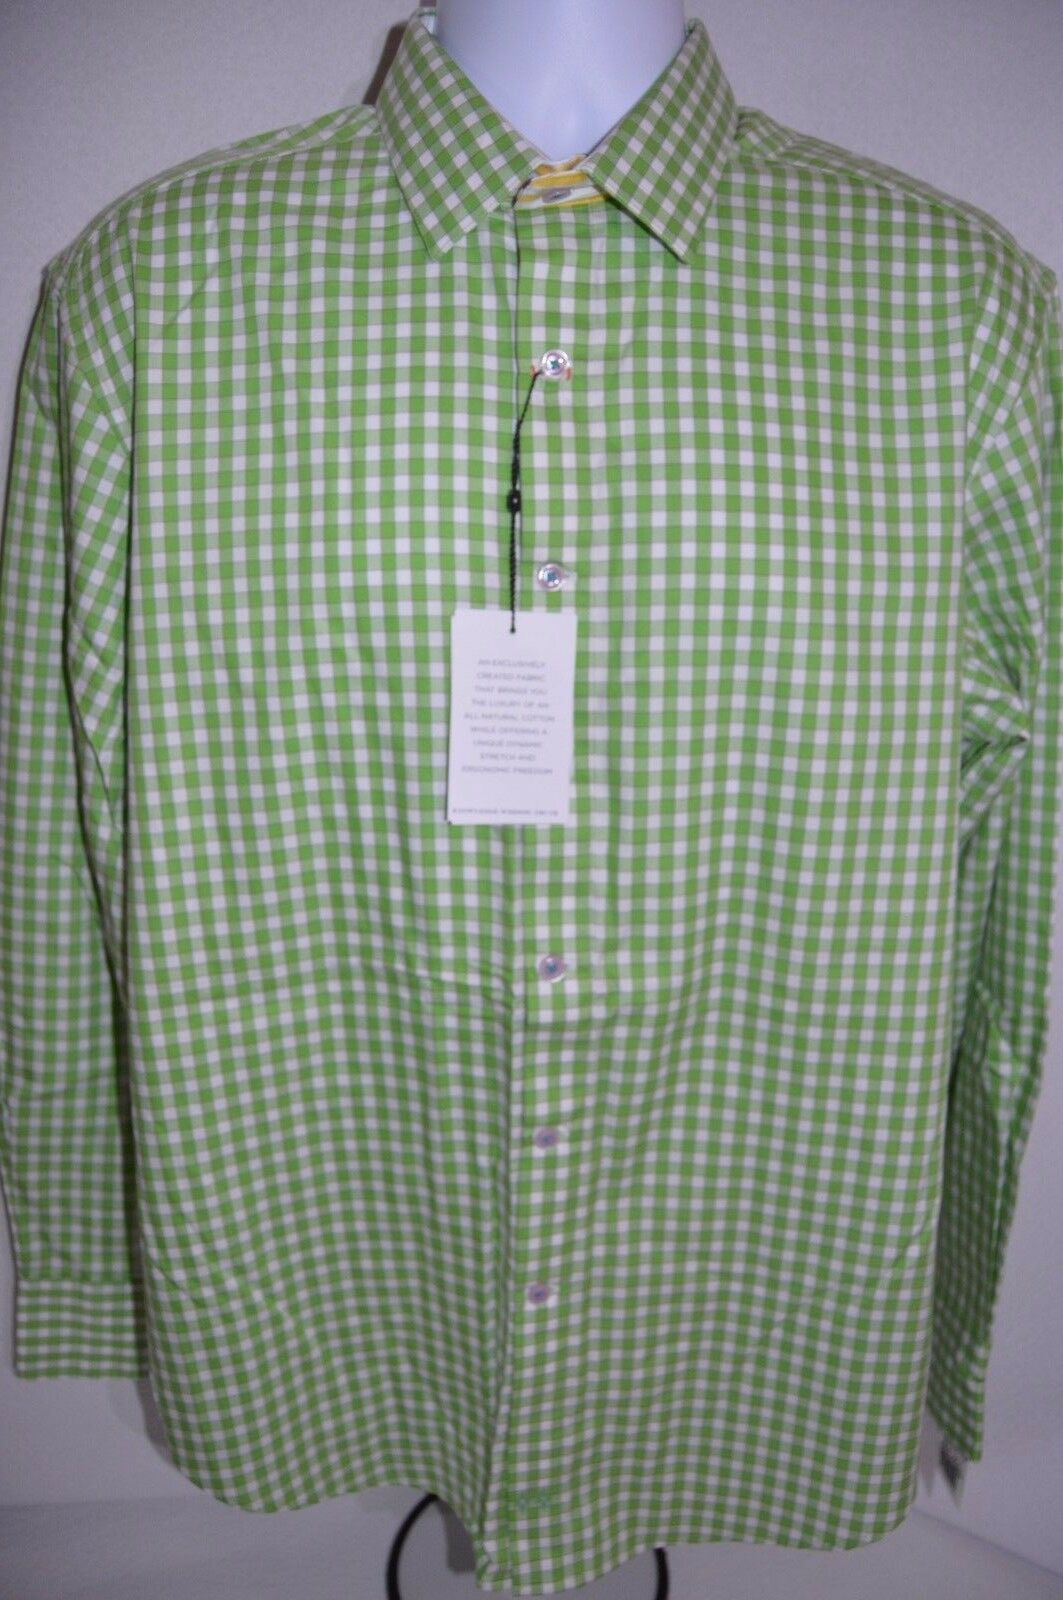 ROBERT GRAHAM Man's X Collection blue Casual Shirt NEW Size Large Retail